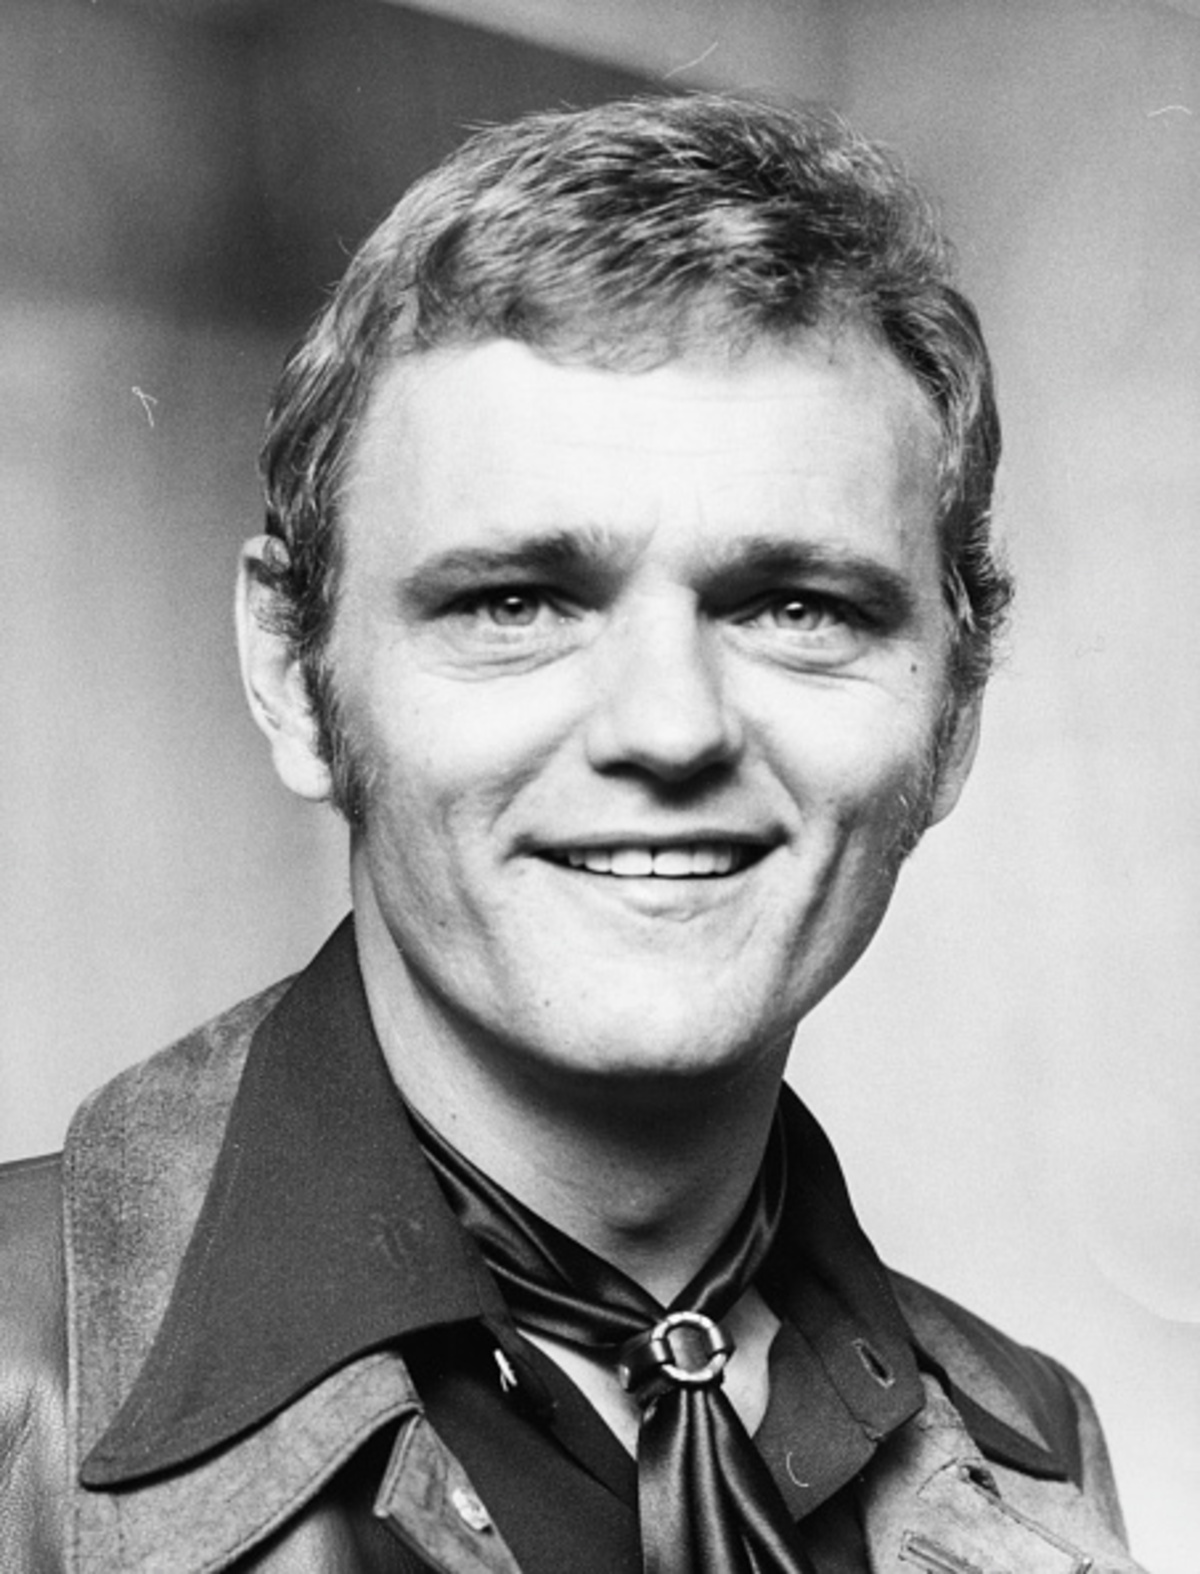 jerry reed remembering